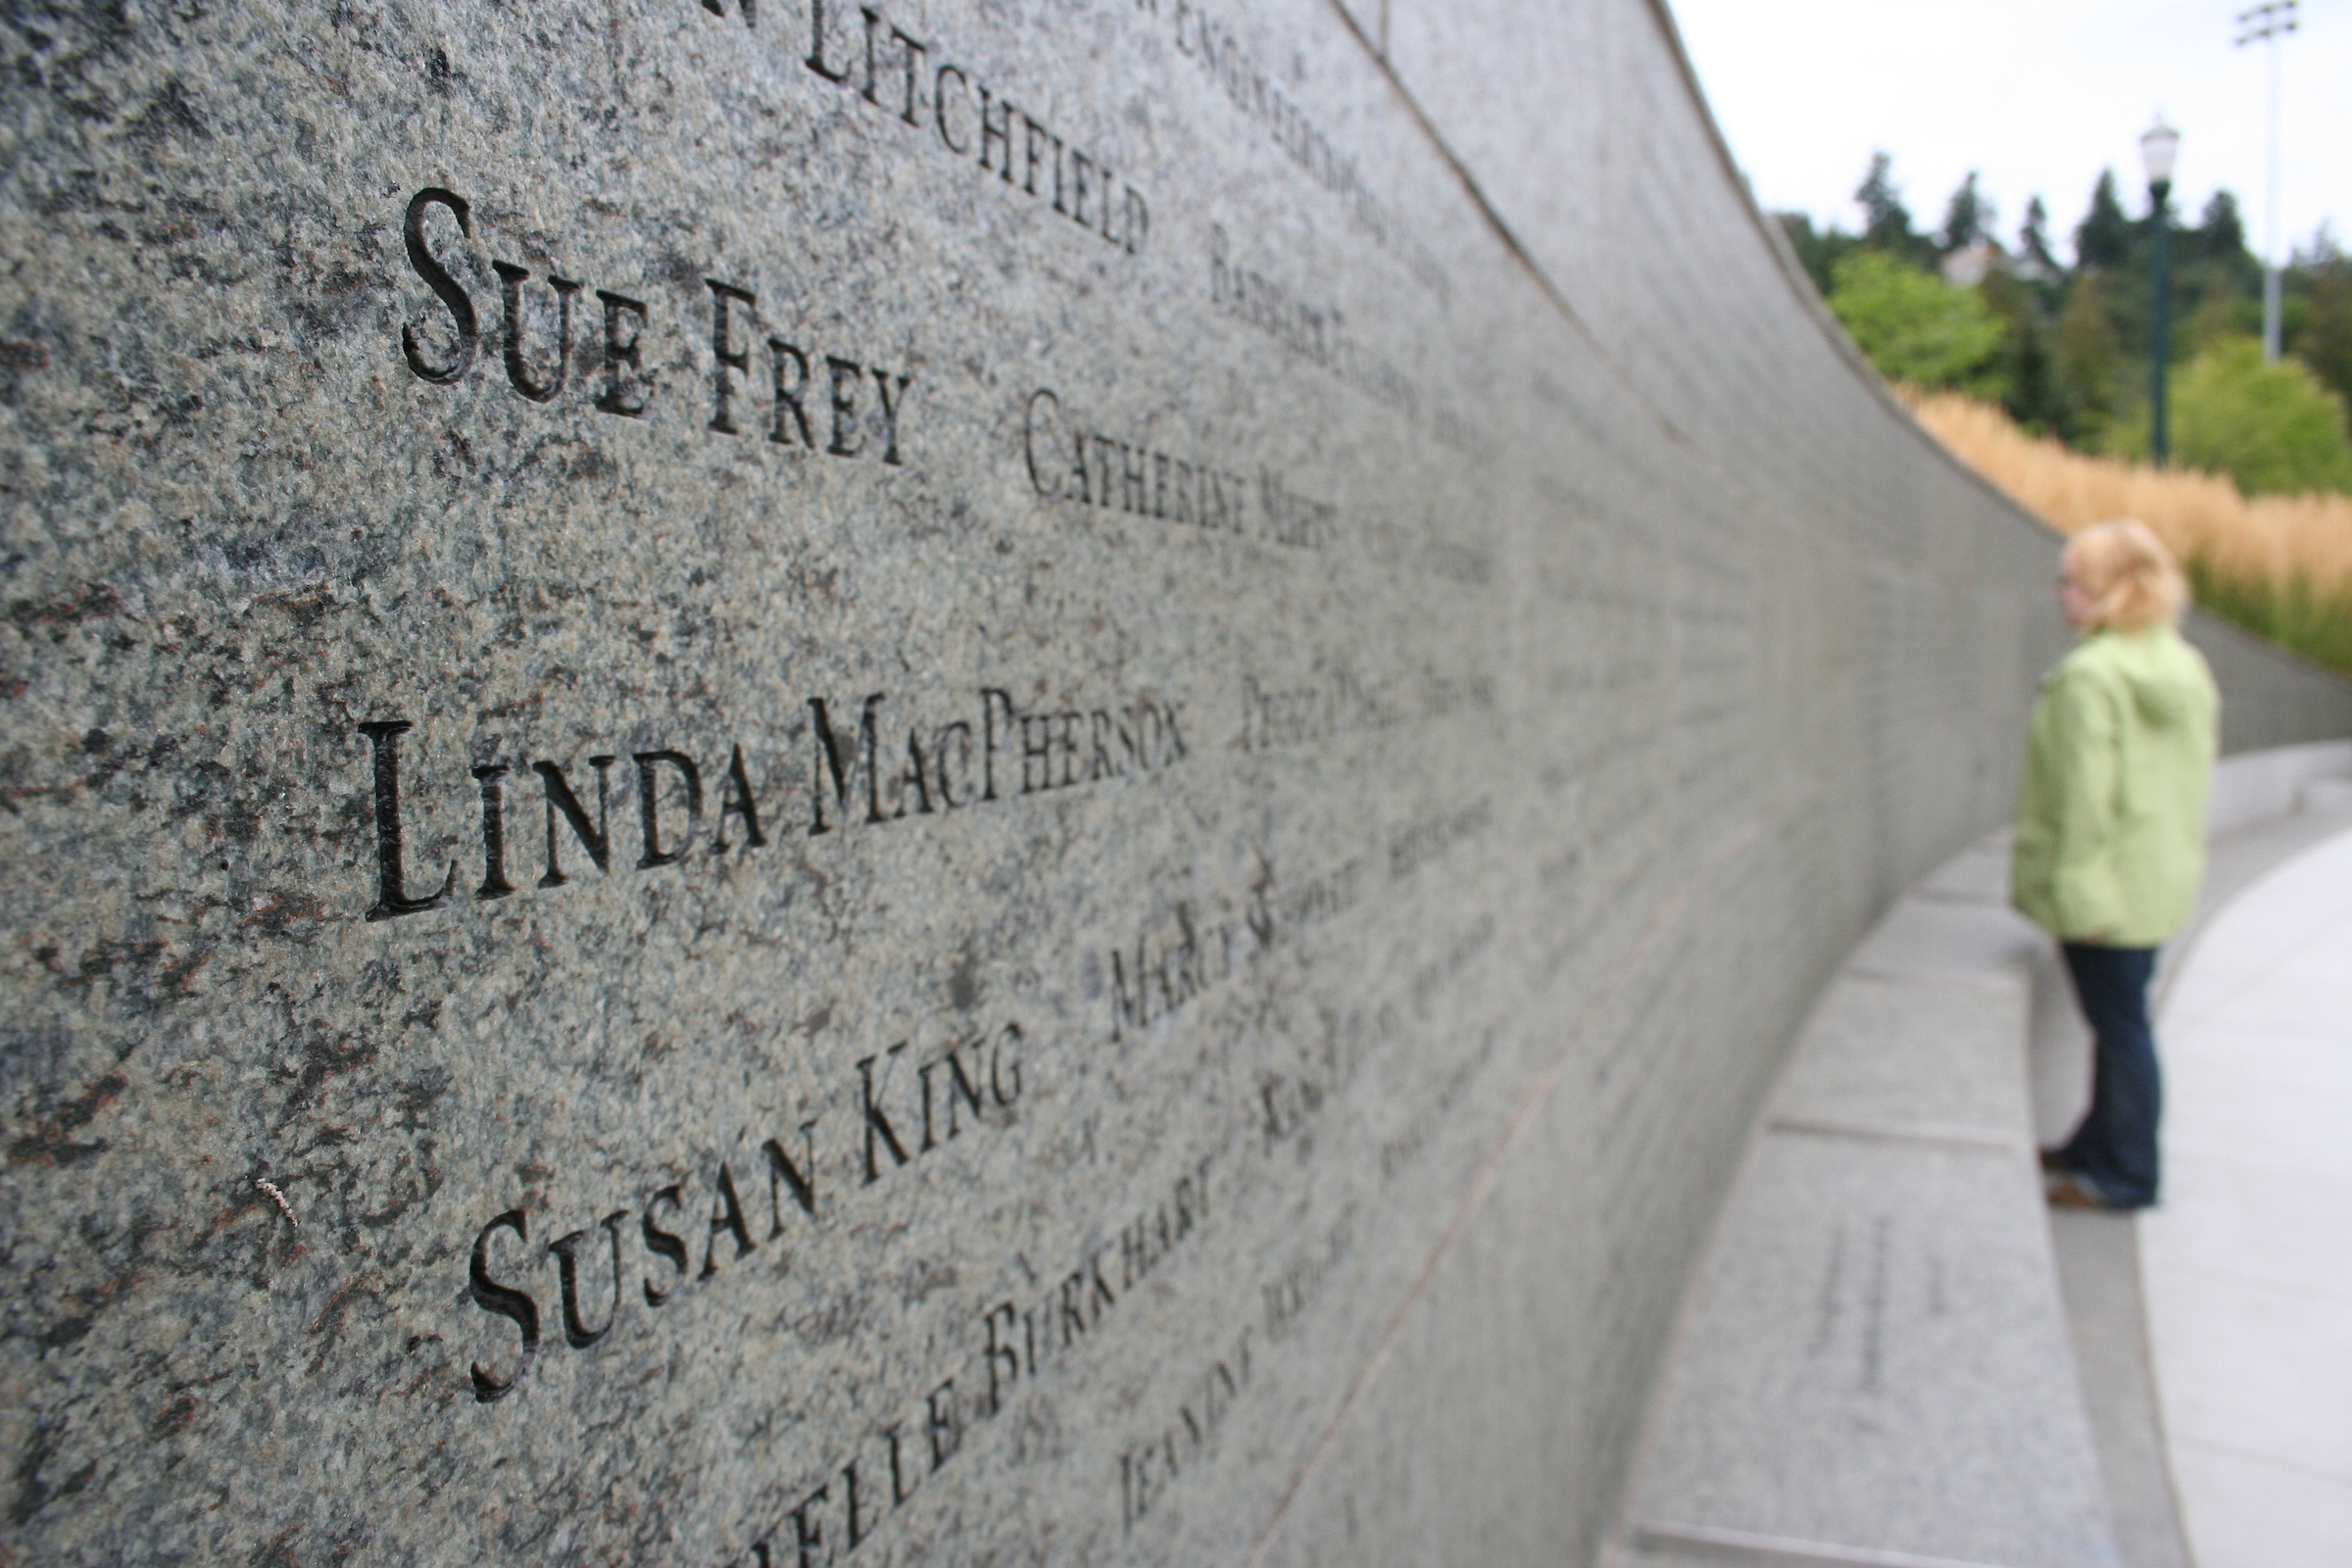 Close up of stone wall with engraved names and woman in background